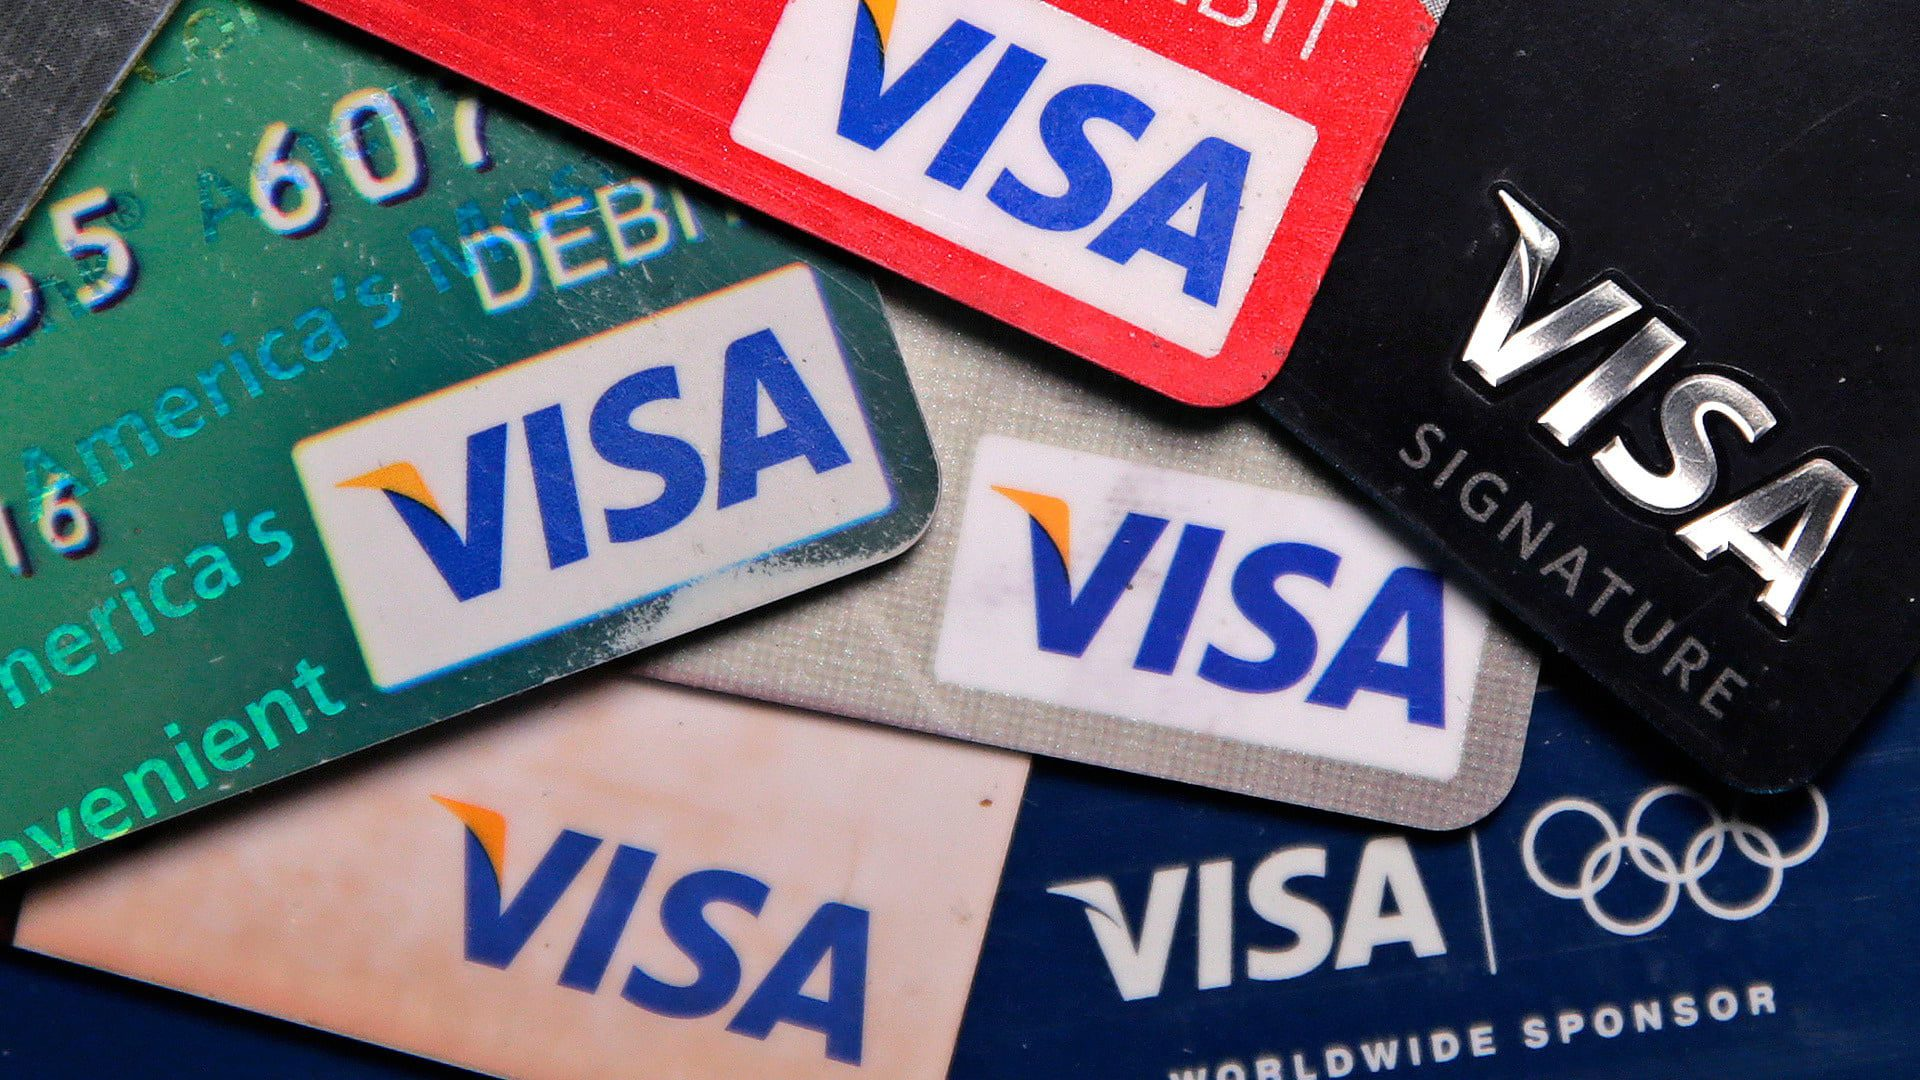 Visa, Institutions, and Banks Take Action to Buy Bitcoin (BTC)